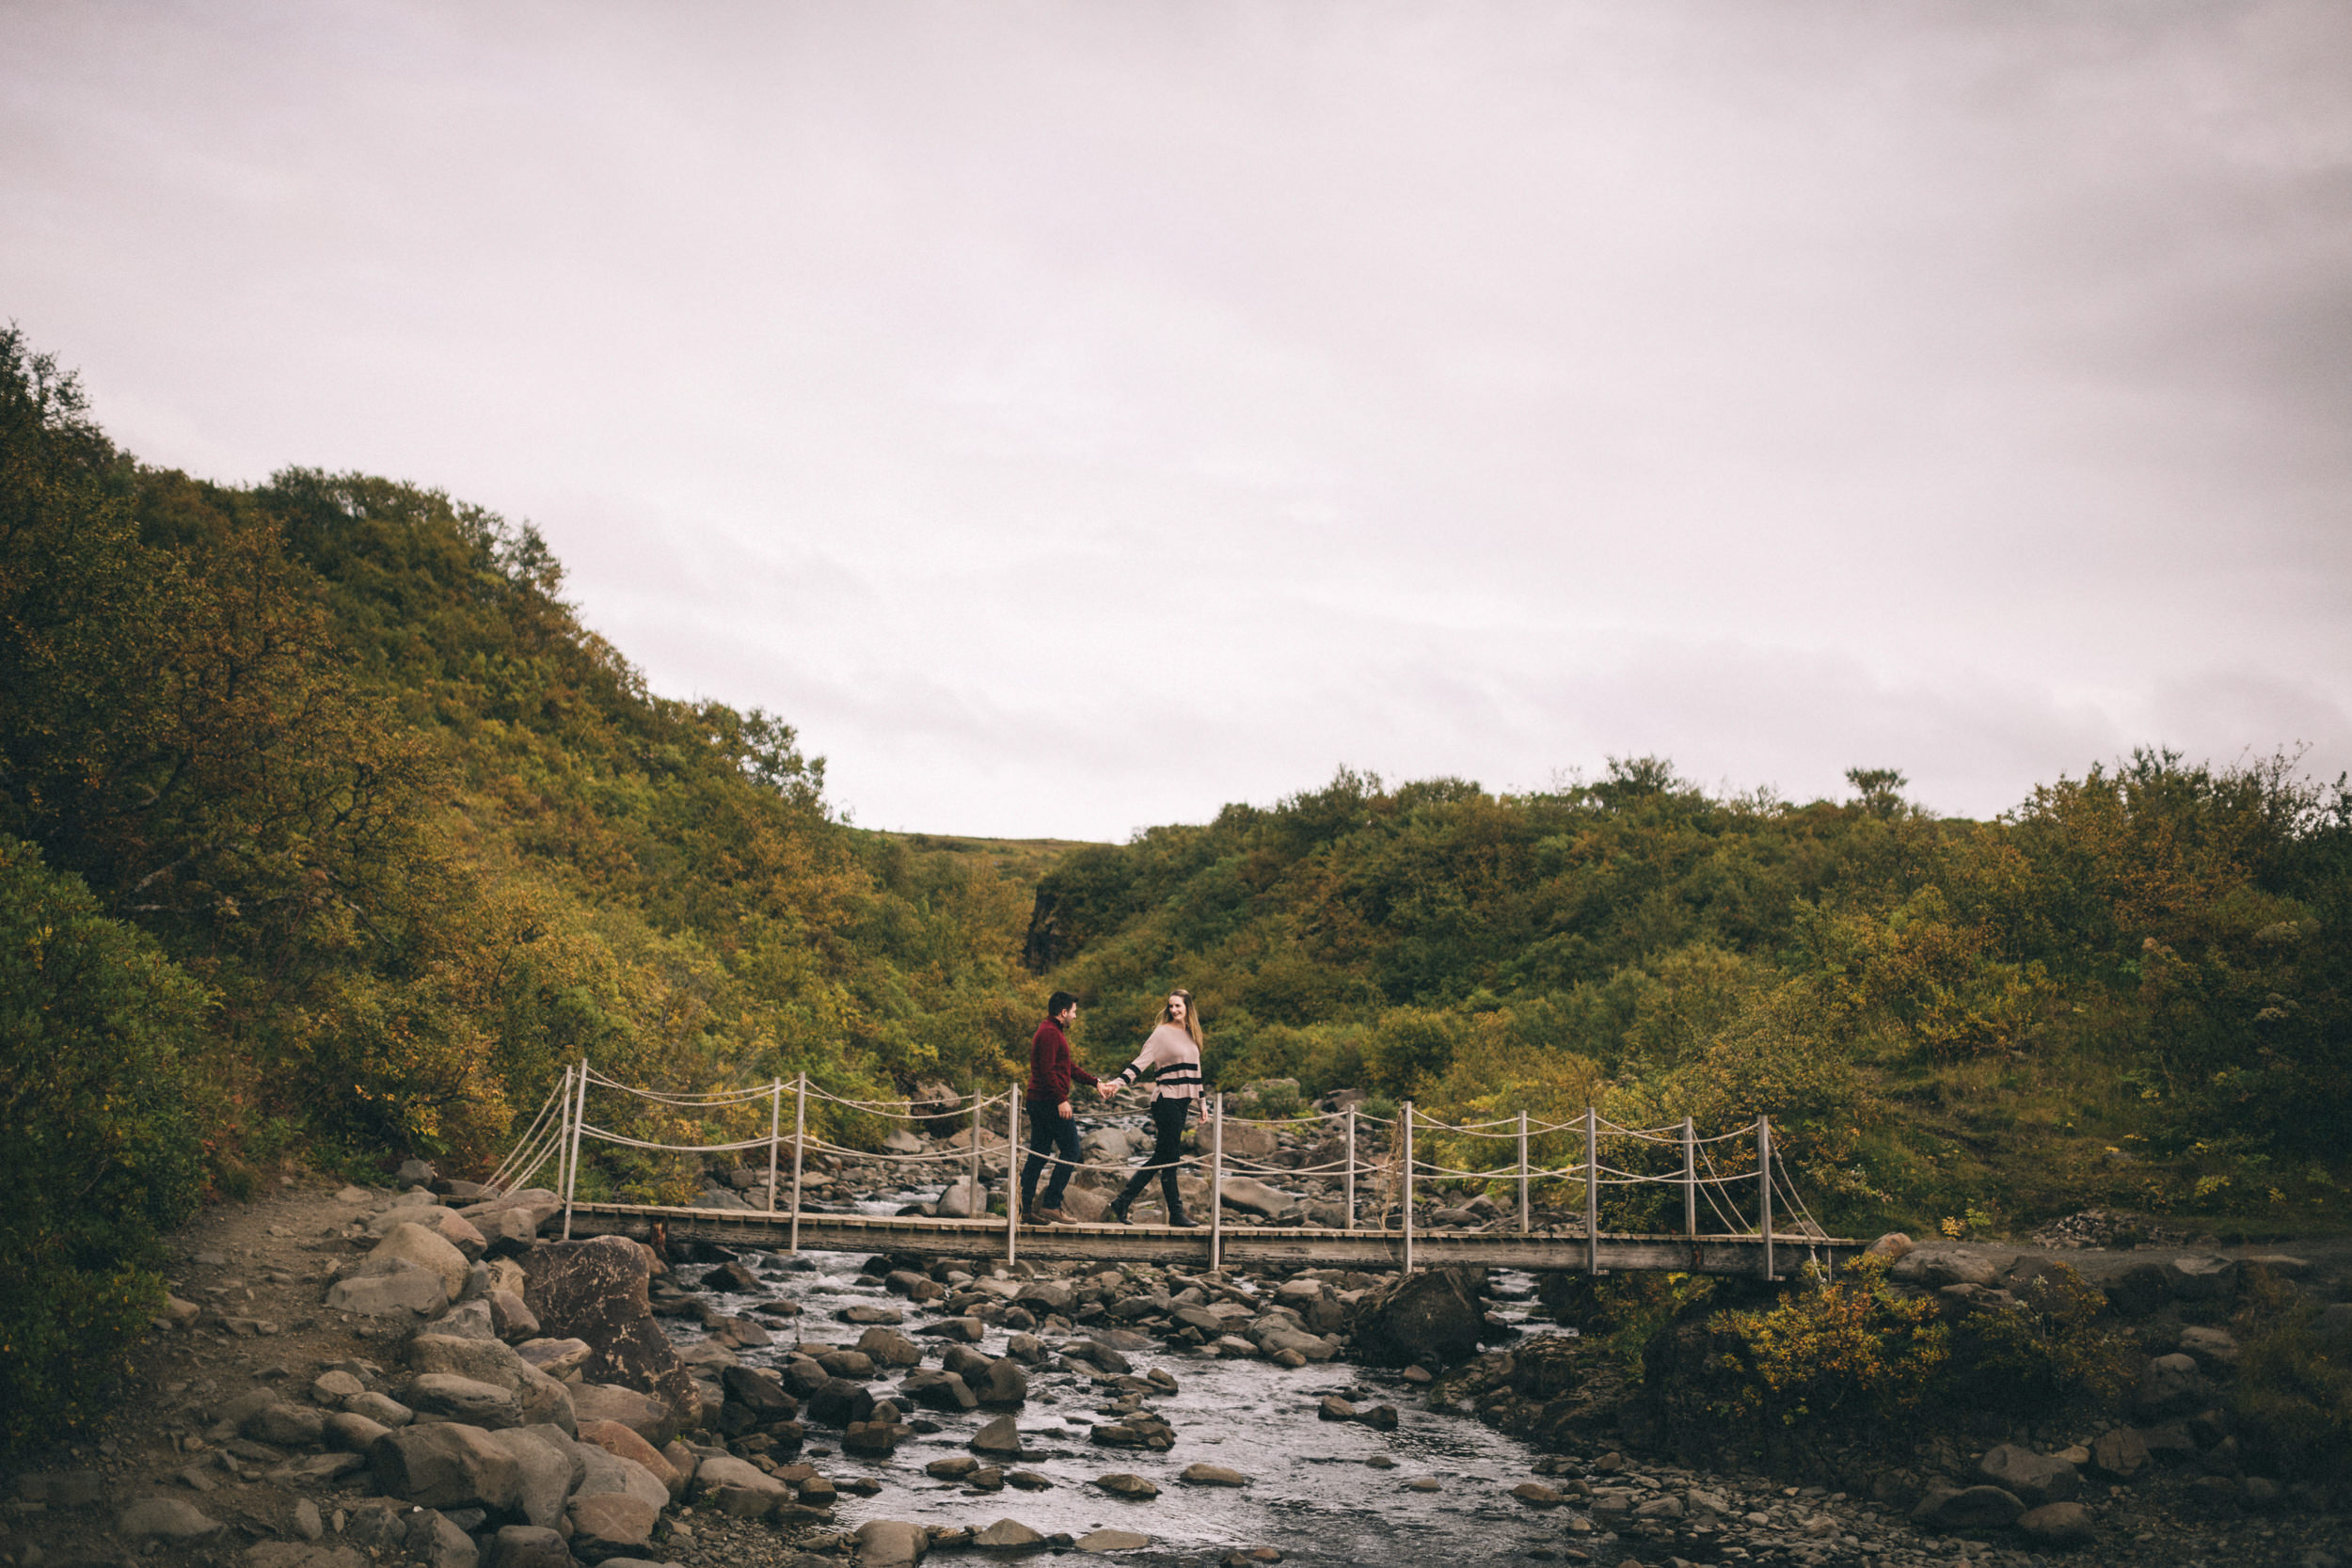 Sarah-Katherine-Davis-Photography-Iceland-Adventure-Elopement-Photographer-Louisville-Kentucky-Wedding-Photographer-Travel-Vik-Beach-Engagement-Session-Cozy-Iceland-South-Coast-152edit.jpg